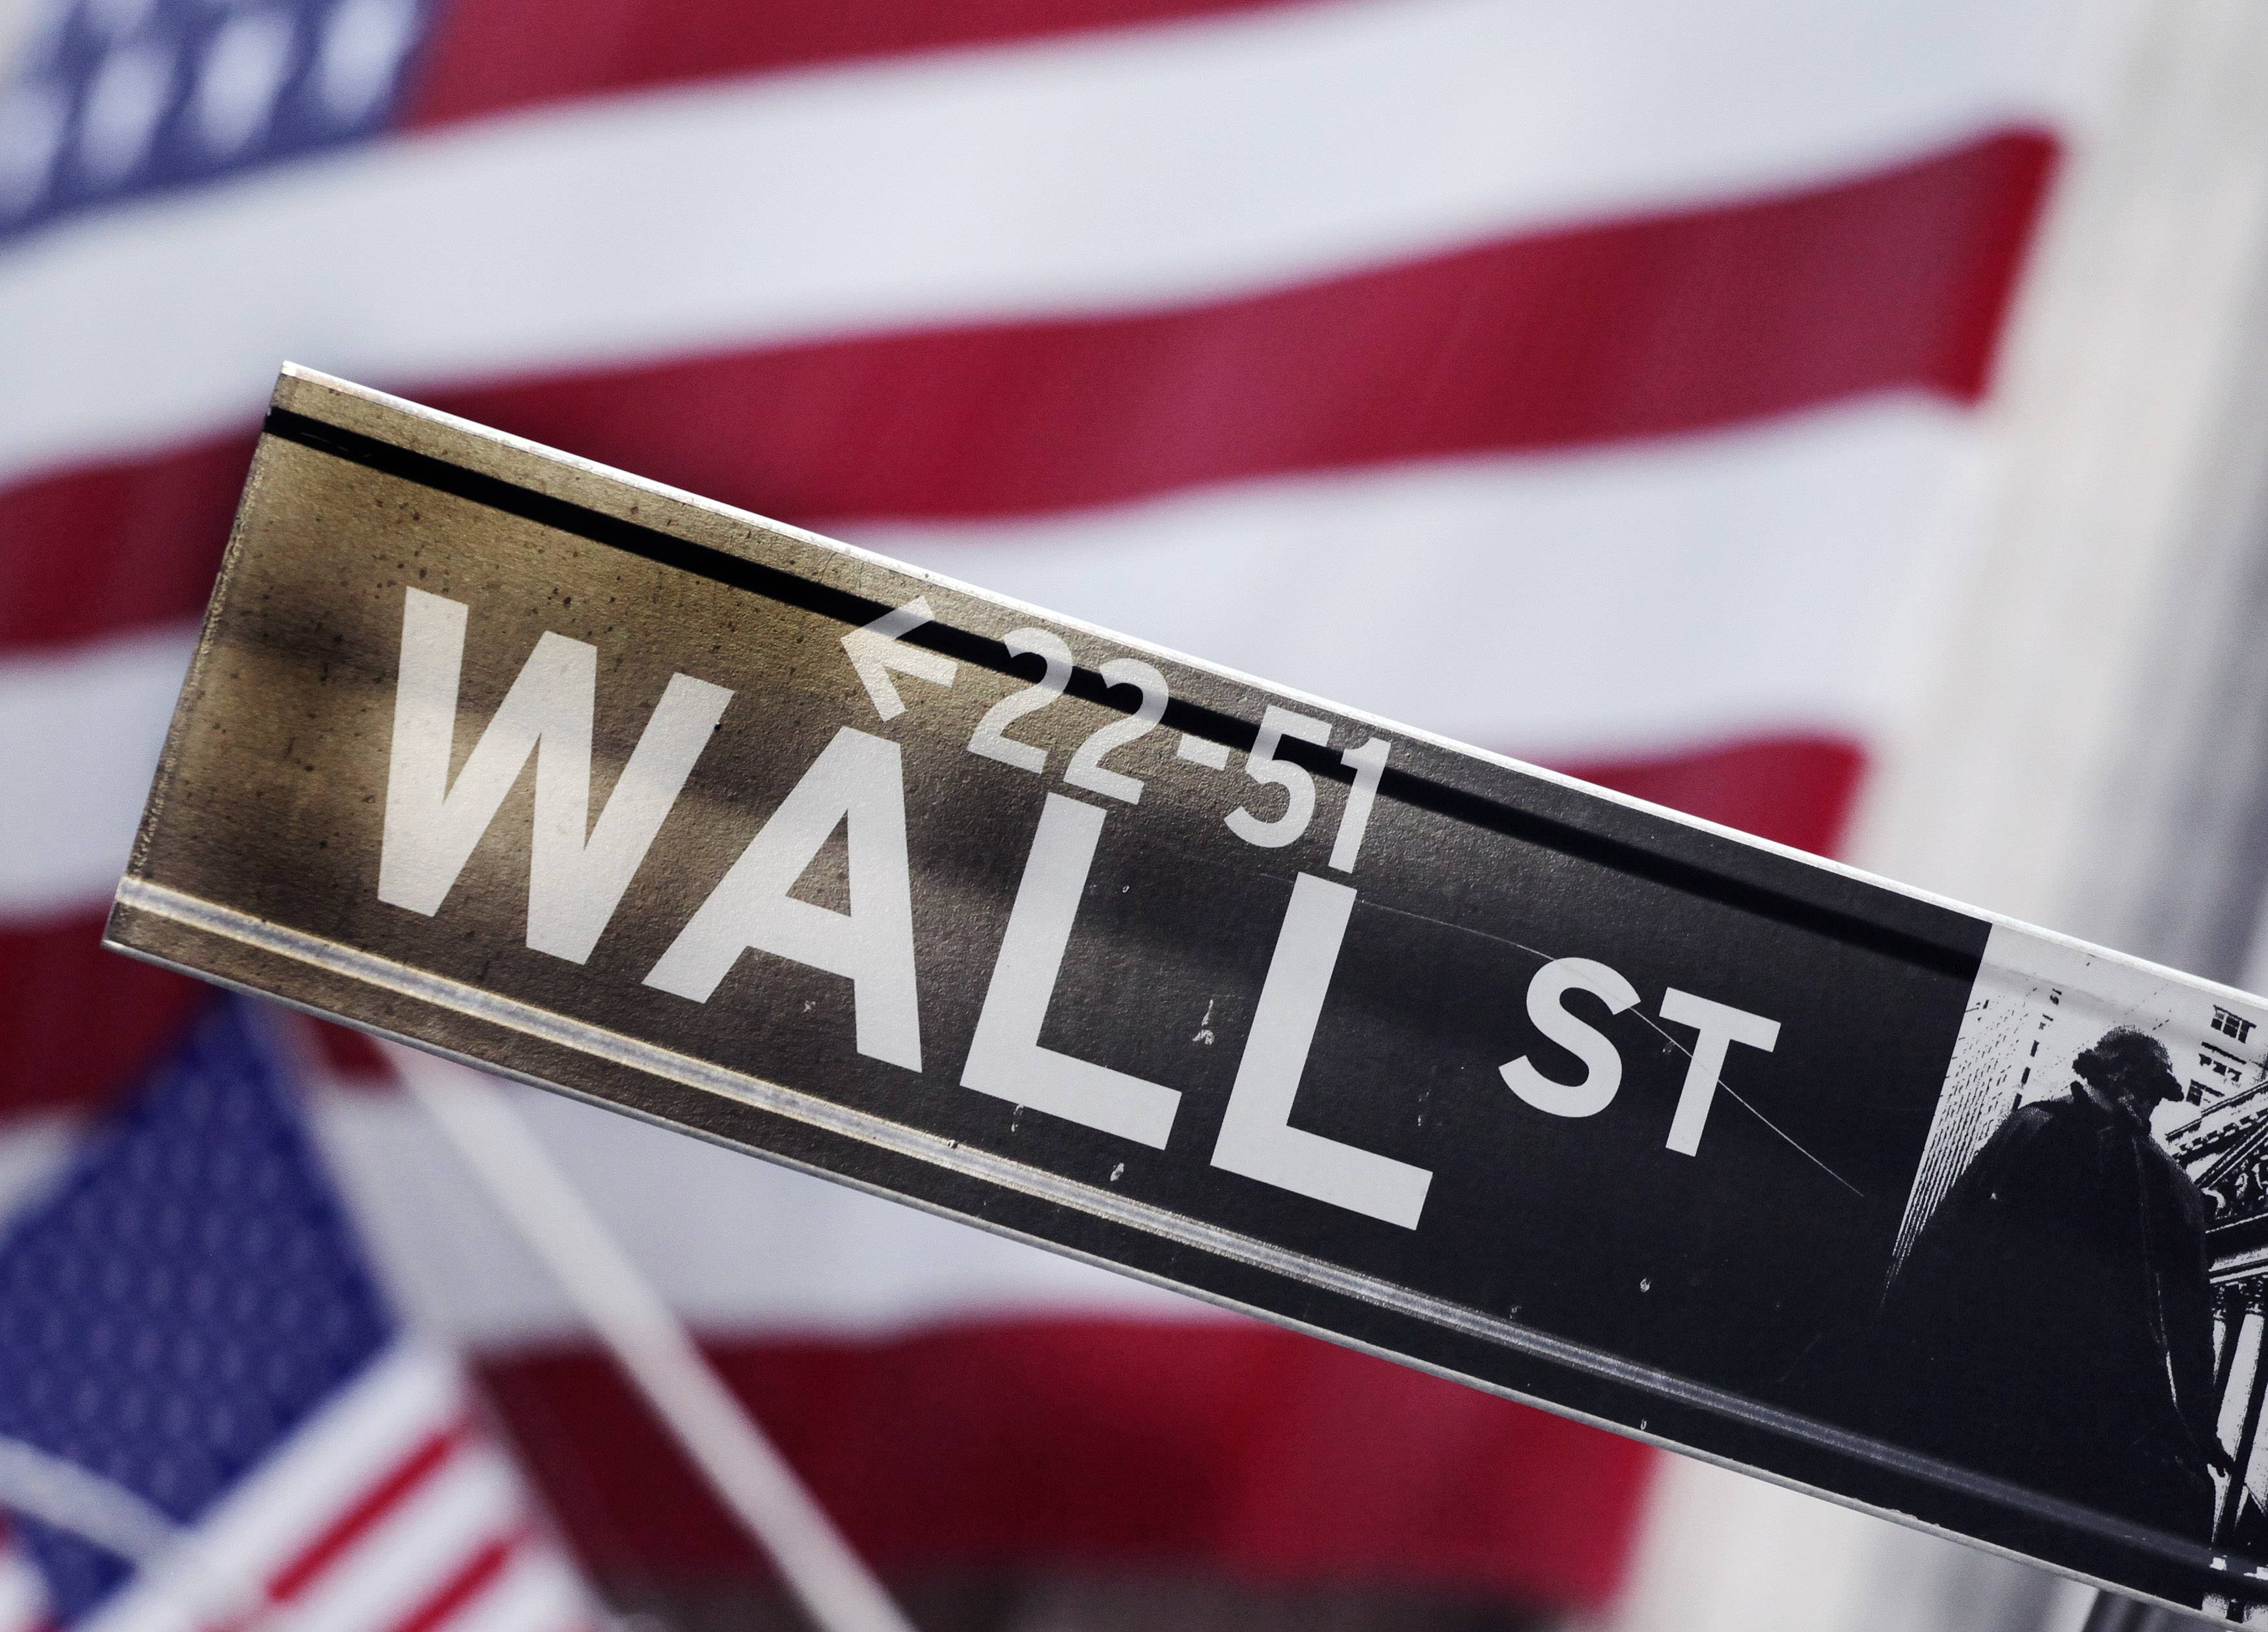 This Aug. 9, 2011 photo shows a Wall Street street sign near the New York Stock Exchange, in New York. U.S. stock futures are heading lower in early trading Tuesday, June 3, 2014, a day after major indexes reached new highs.